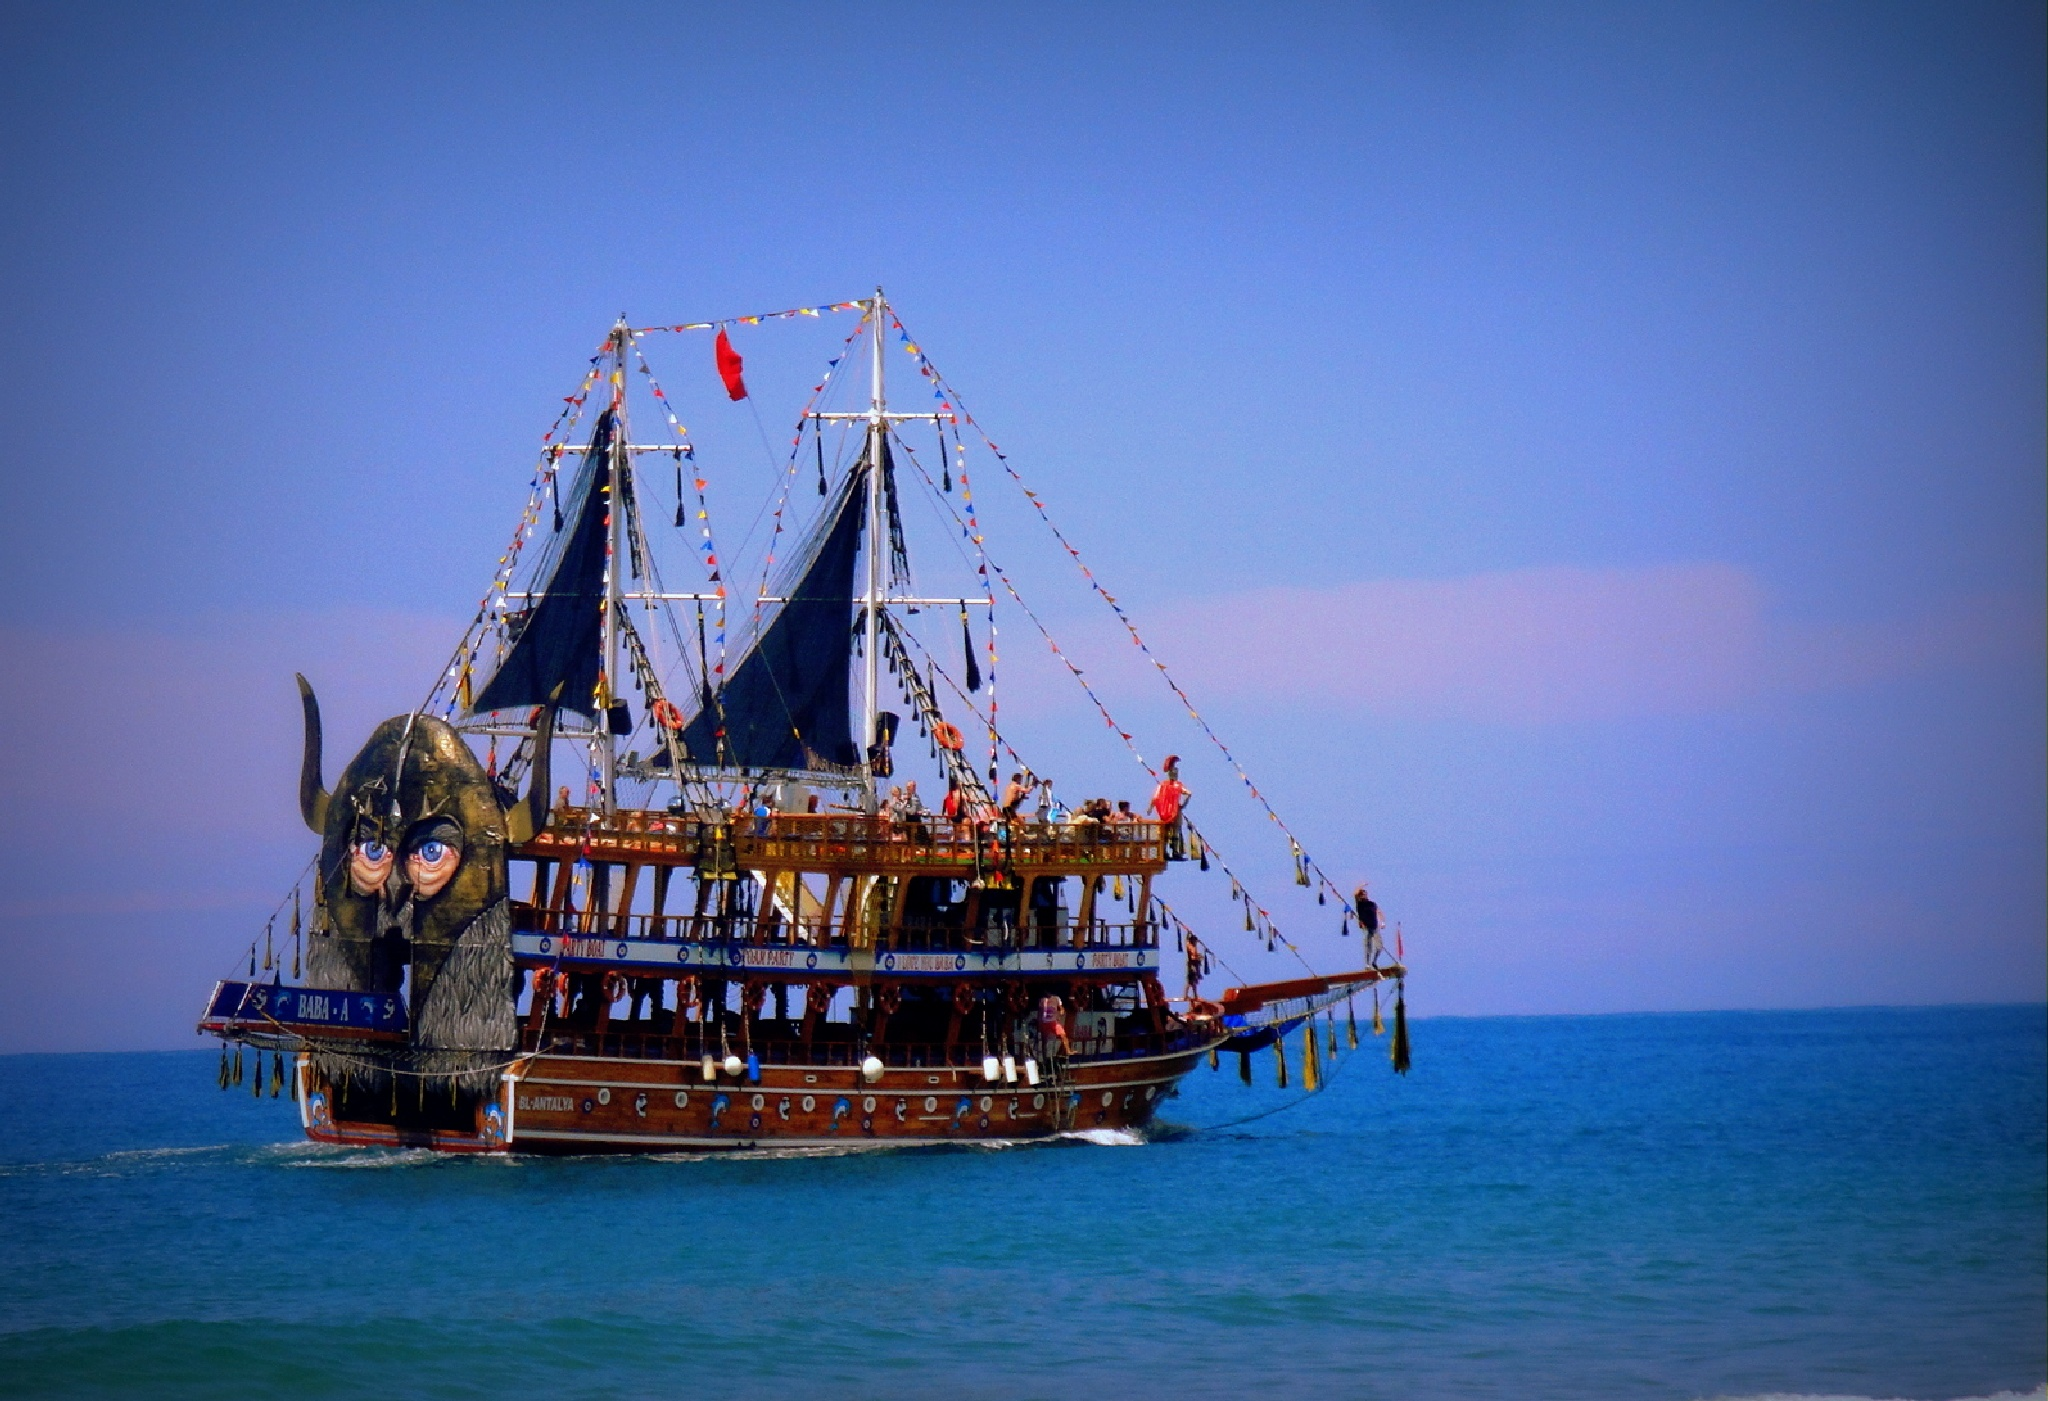 Pirate's ship by SigitaBer